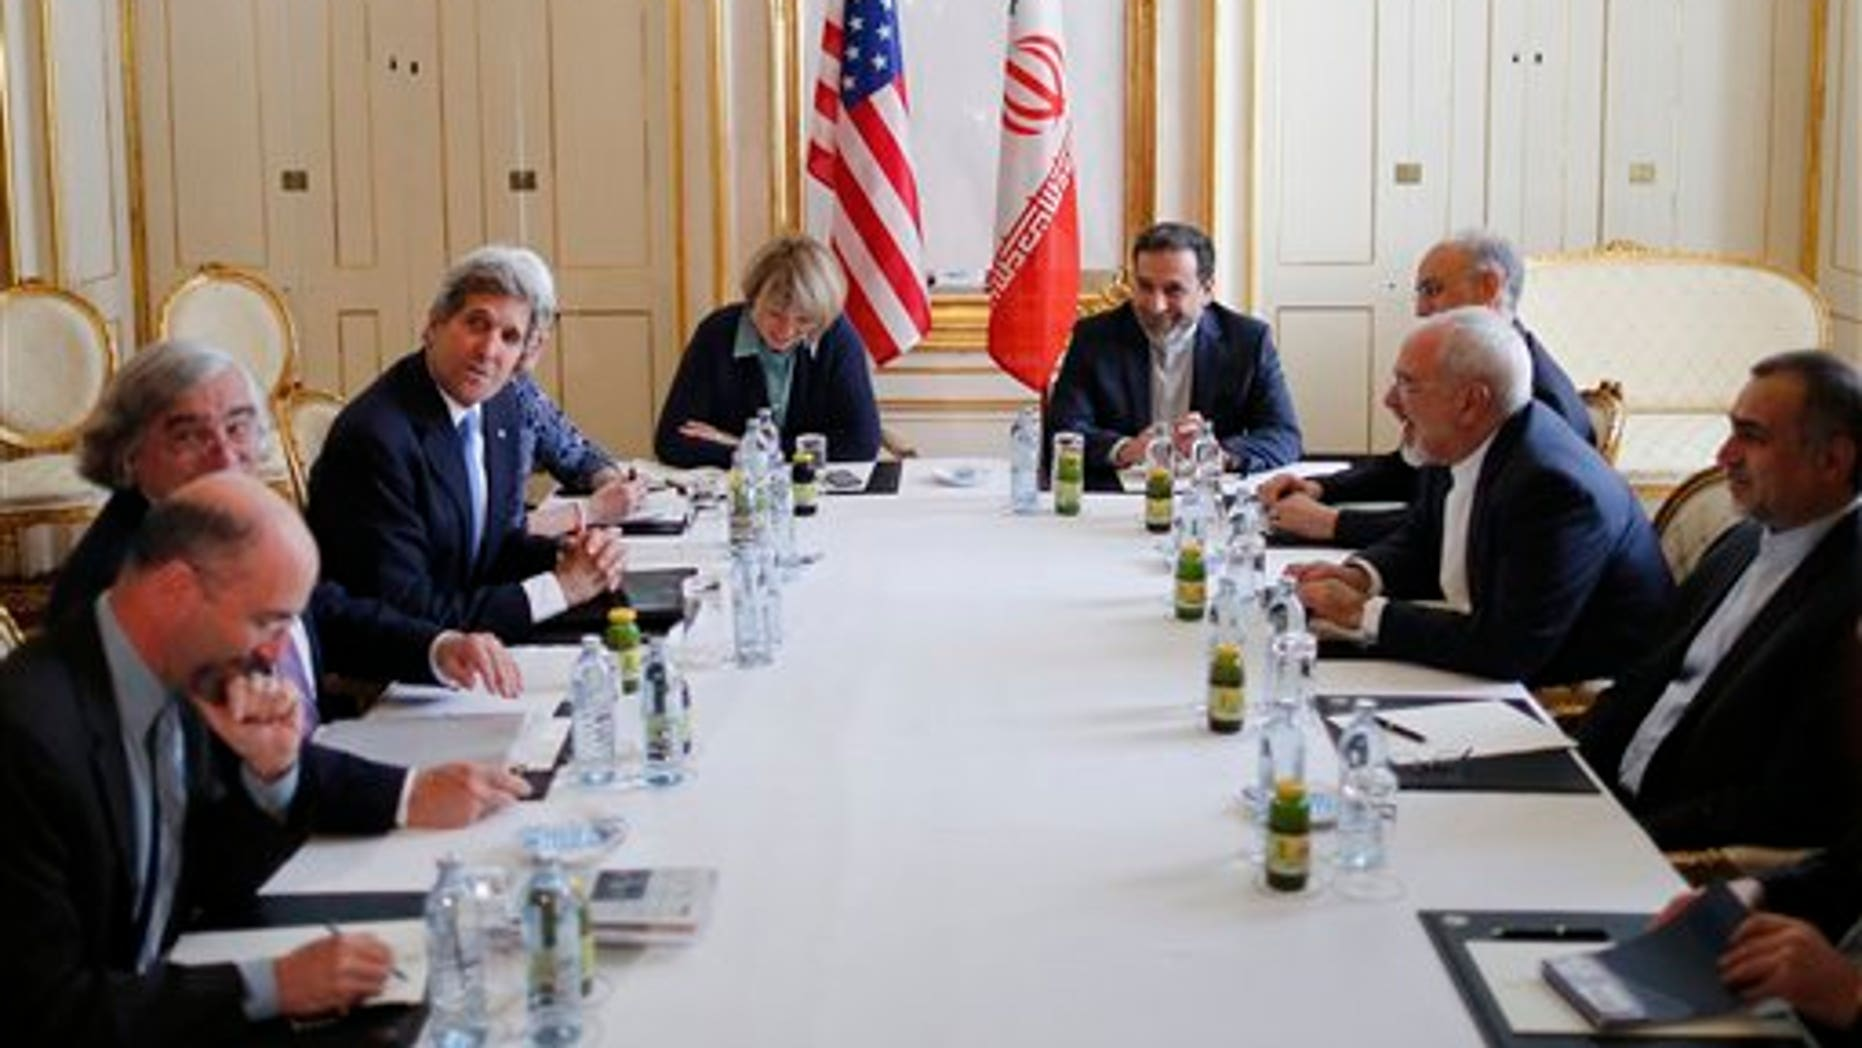 U.S. Secretary of State John Kerry, 3rd left, meets with Iranian Foreign Minister Javad Zarif, 2nd right, at an hotel in Vienna, Wednesday July 1, 2015. The head of the U.N. agency tasked to monitor a nuclear deal is traveling to Tehran to meet with Iranian President Hassan Rouhani, the agency said Wednesday. (Carlos Barria/Pool Photo via AP)